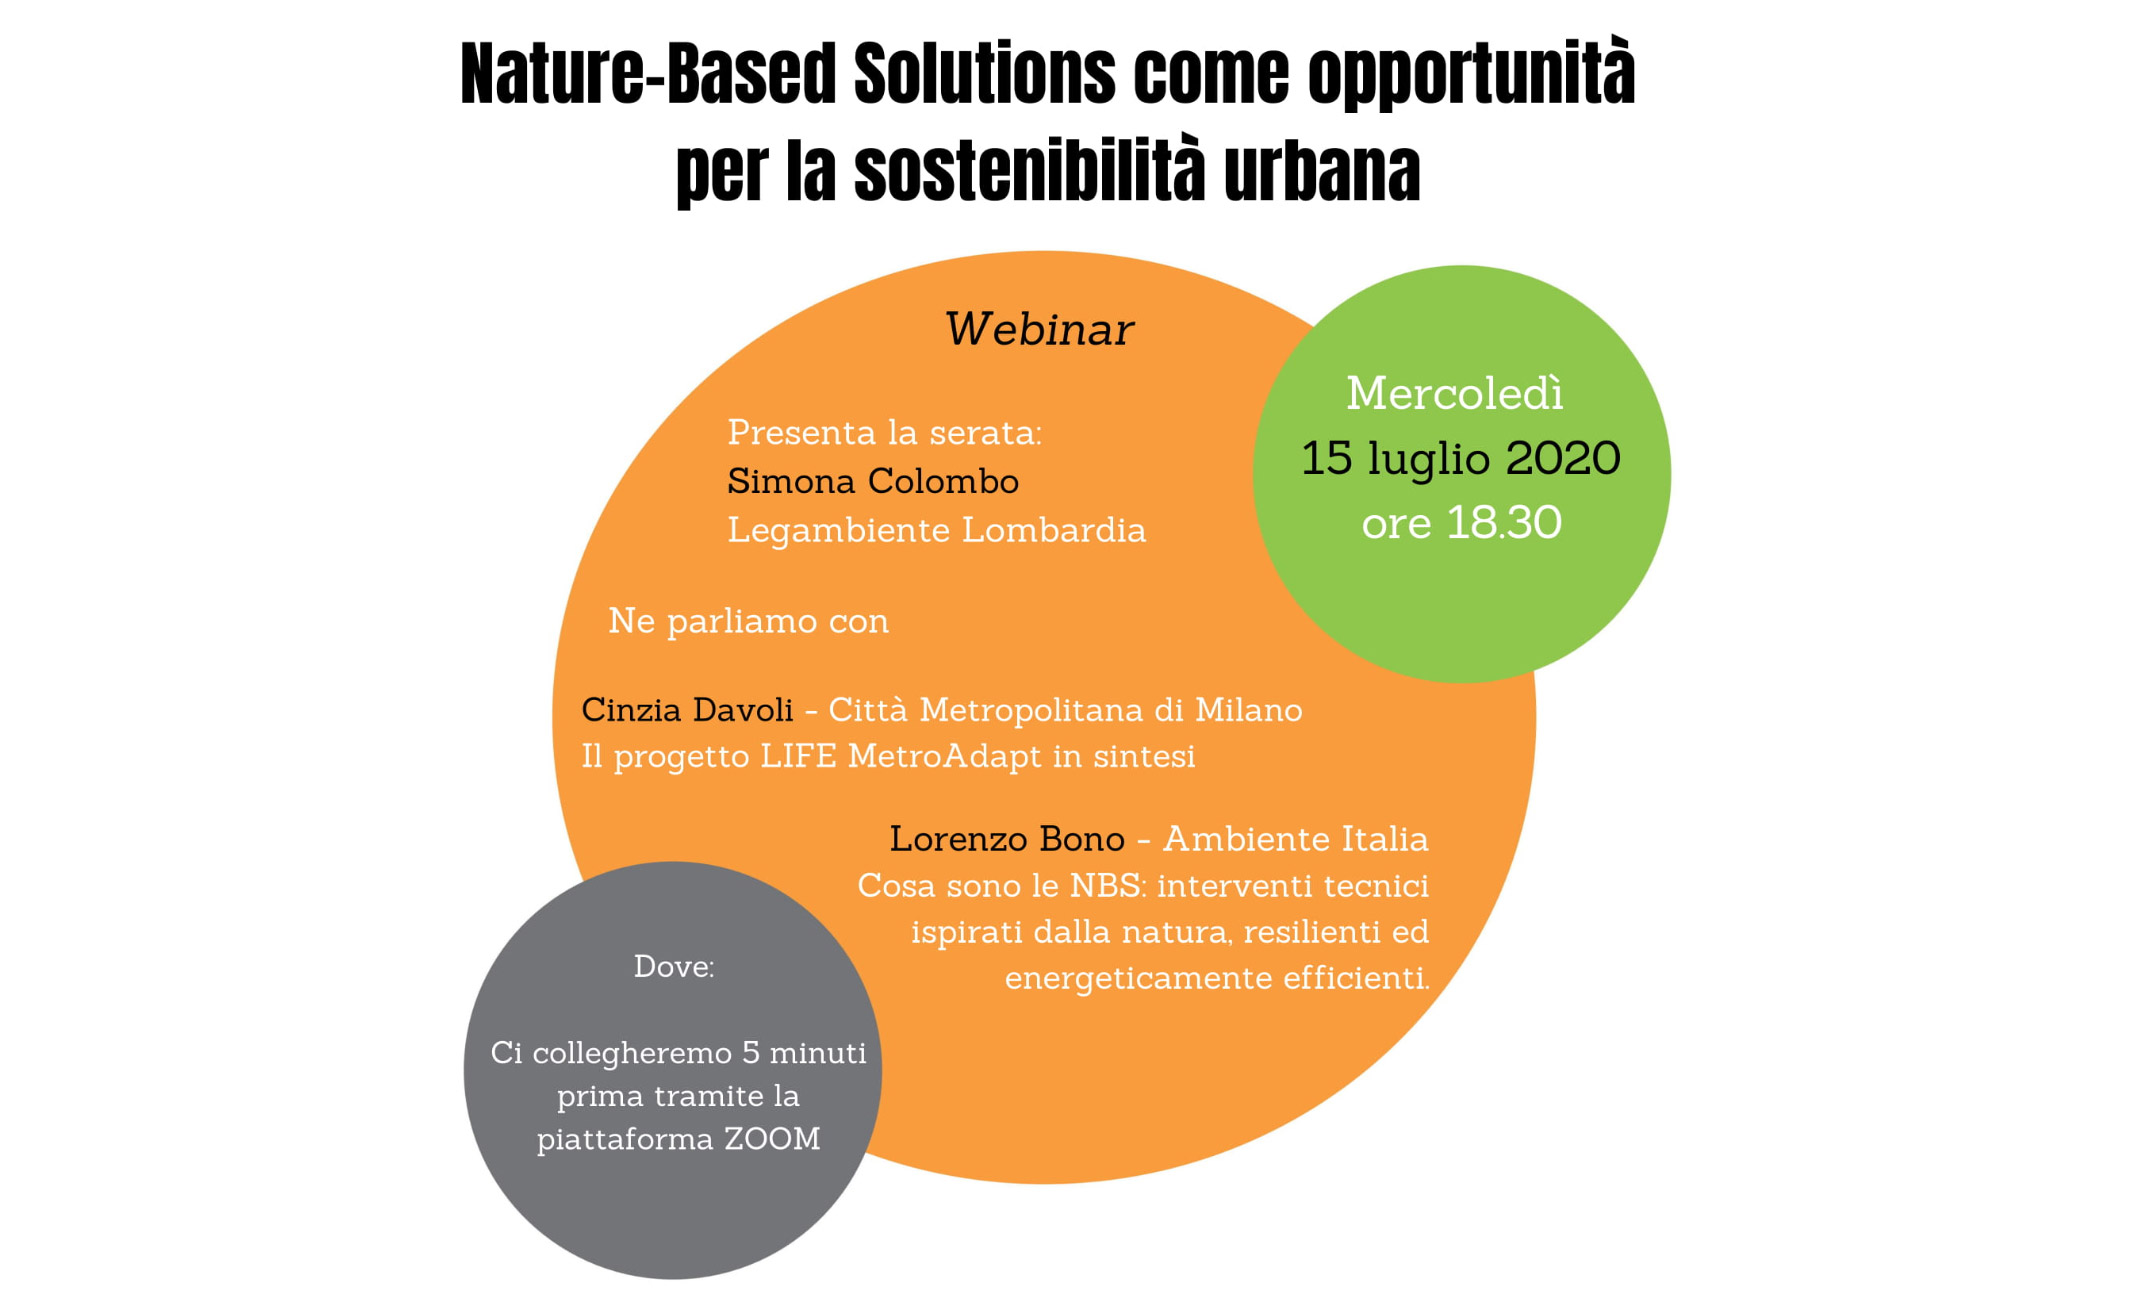 Nature-Based Solutions come opportunità per la sostenibilità urbana